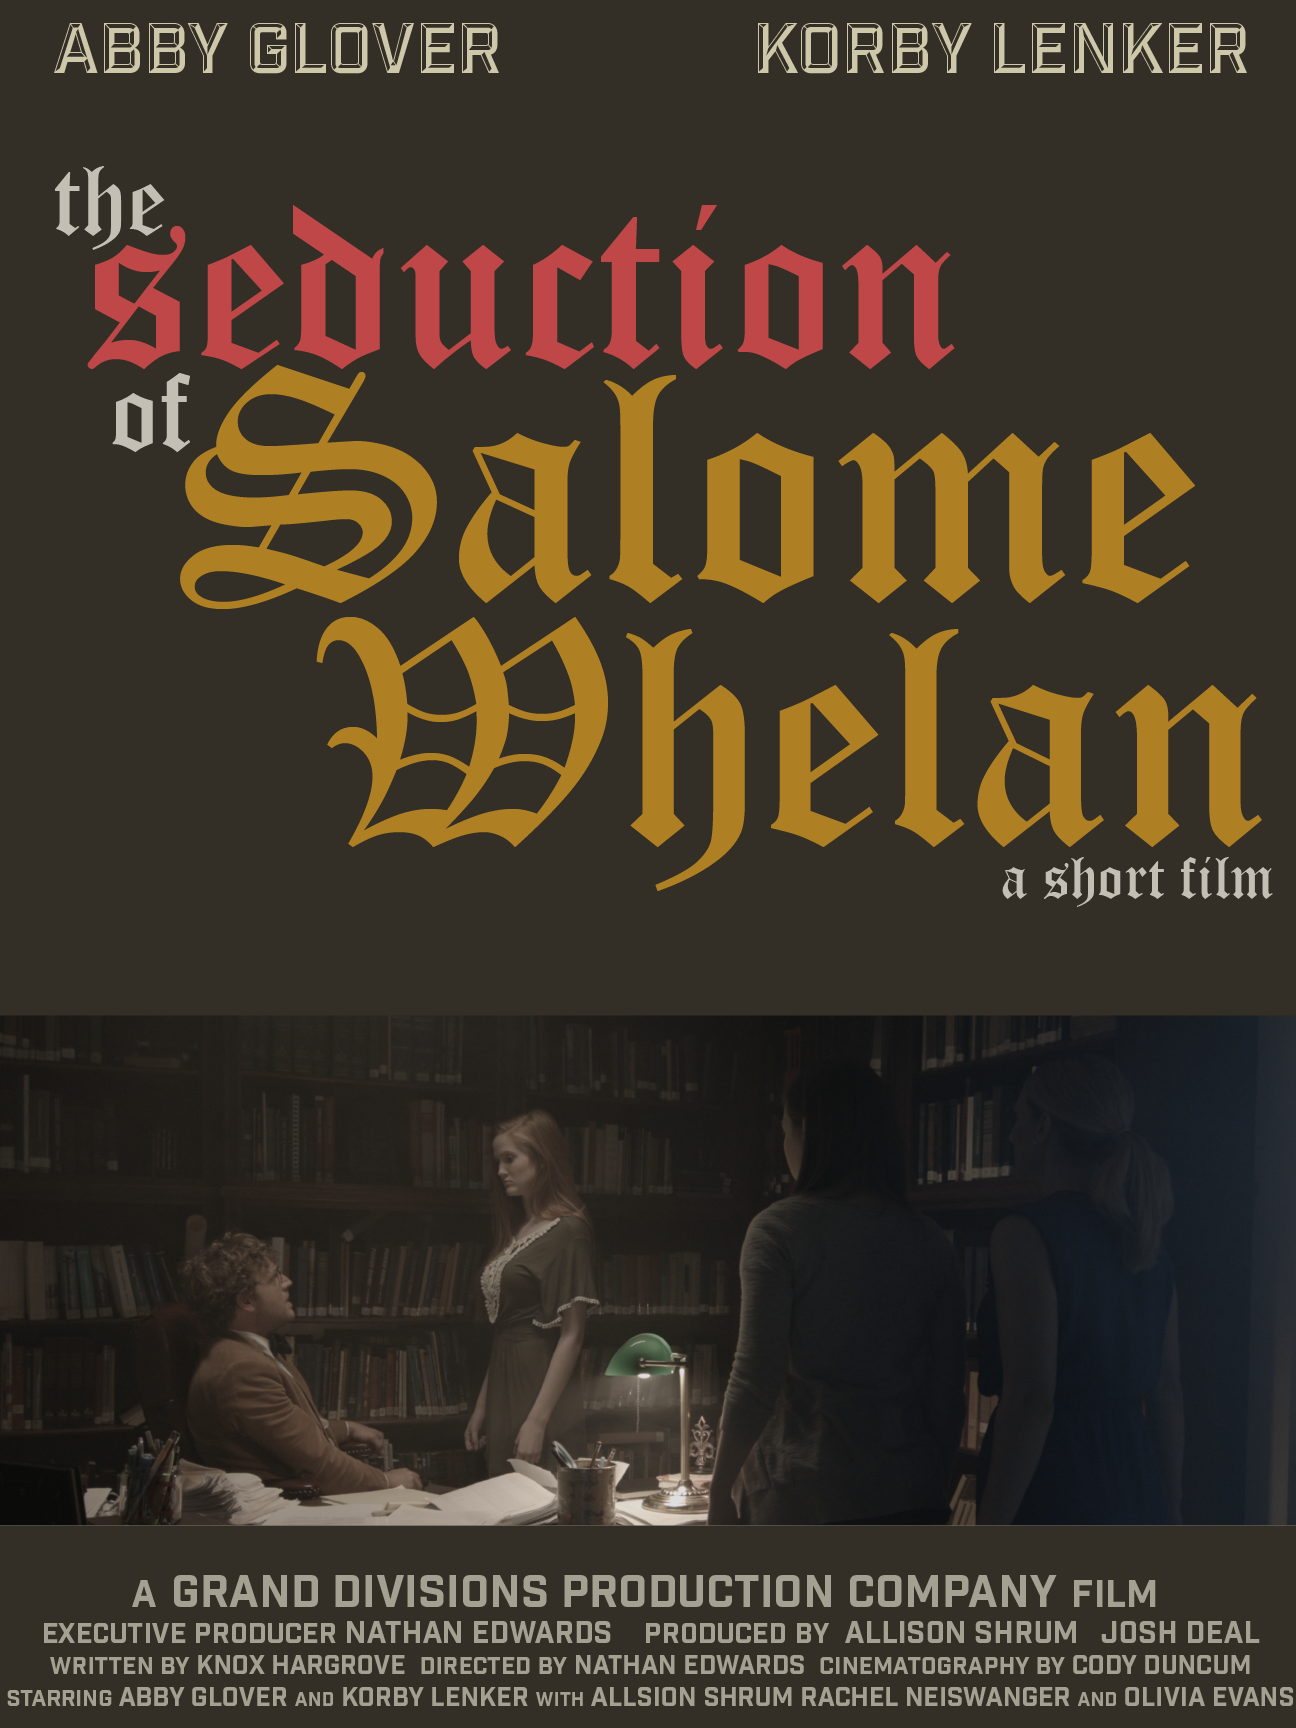 The Seduction of Salome Whelan Enters Post Production - The Seduction of Salome Whelan wrapped the first weekend of March 2018 and is officially beginning the post production process. The film is about an unwanted relationship between a young college student, Salome (Sol-o-may) Whelan, and a young, married, professor, James Gilmore. The Seduction of Salome Whelan focuses on the choices Salome, played by Abby Glover (Kevin Probably Saves the World, I Am Not Ashamed), is forced to make when Gilmore, played by newcomer Korby Lenker, persists in his advances with increasing hostility.Olivia Evans (Nashville), Allison Shrum, (Nashville, The Son), and Rachel Neiswanger round out the cast.